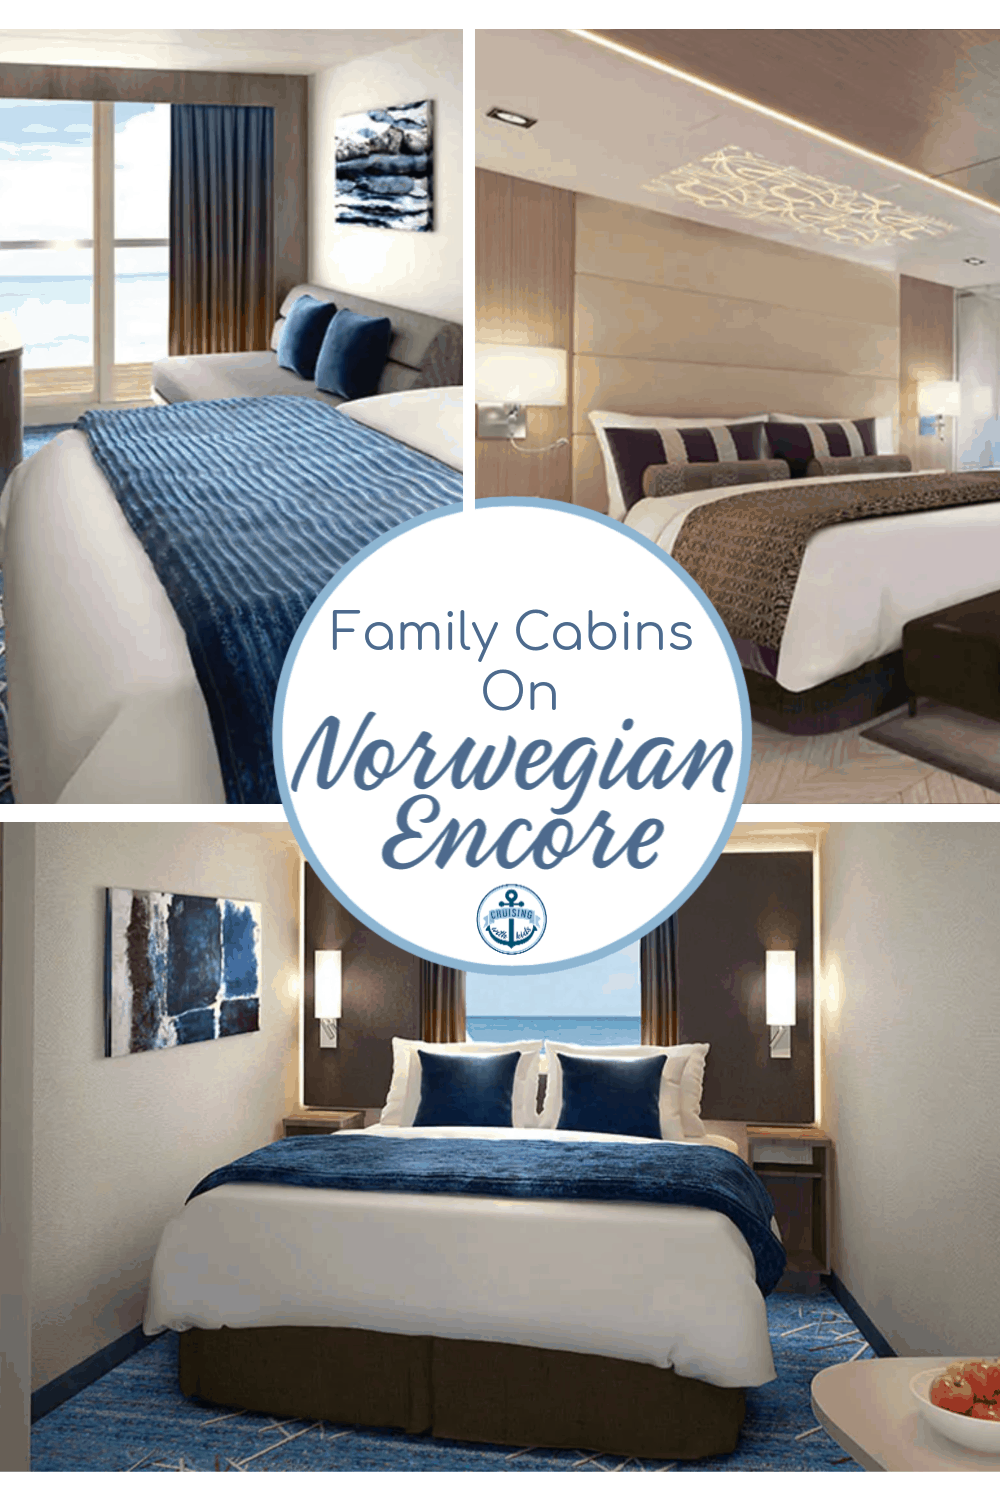 Family Cabins On Norwegian Encore